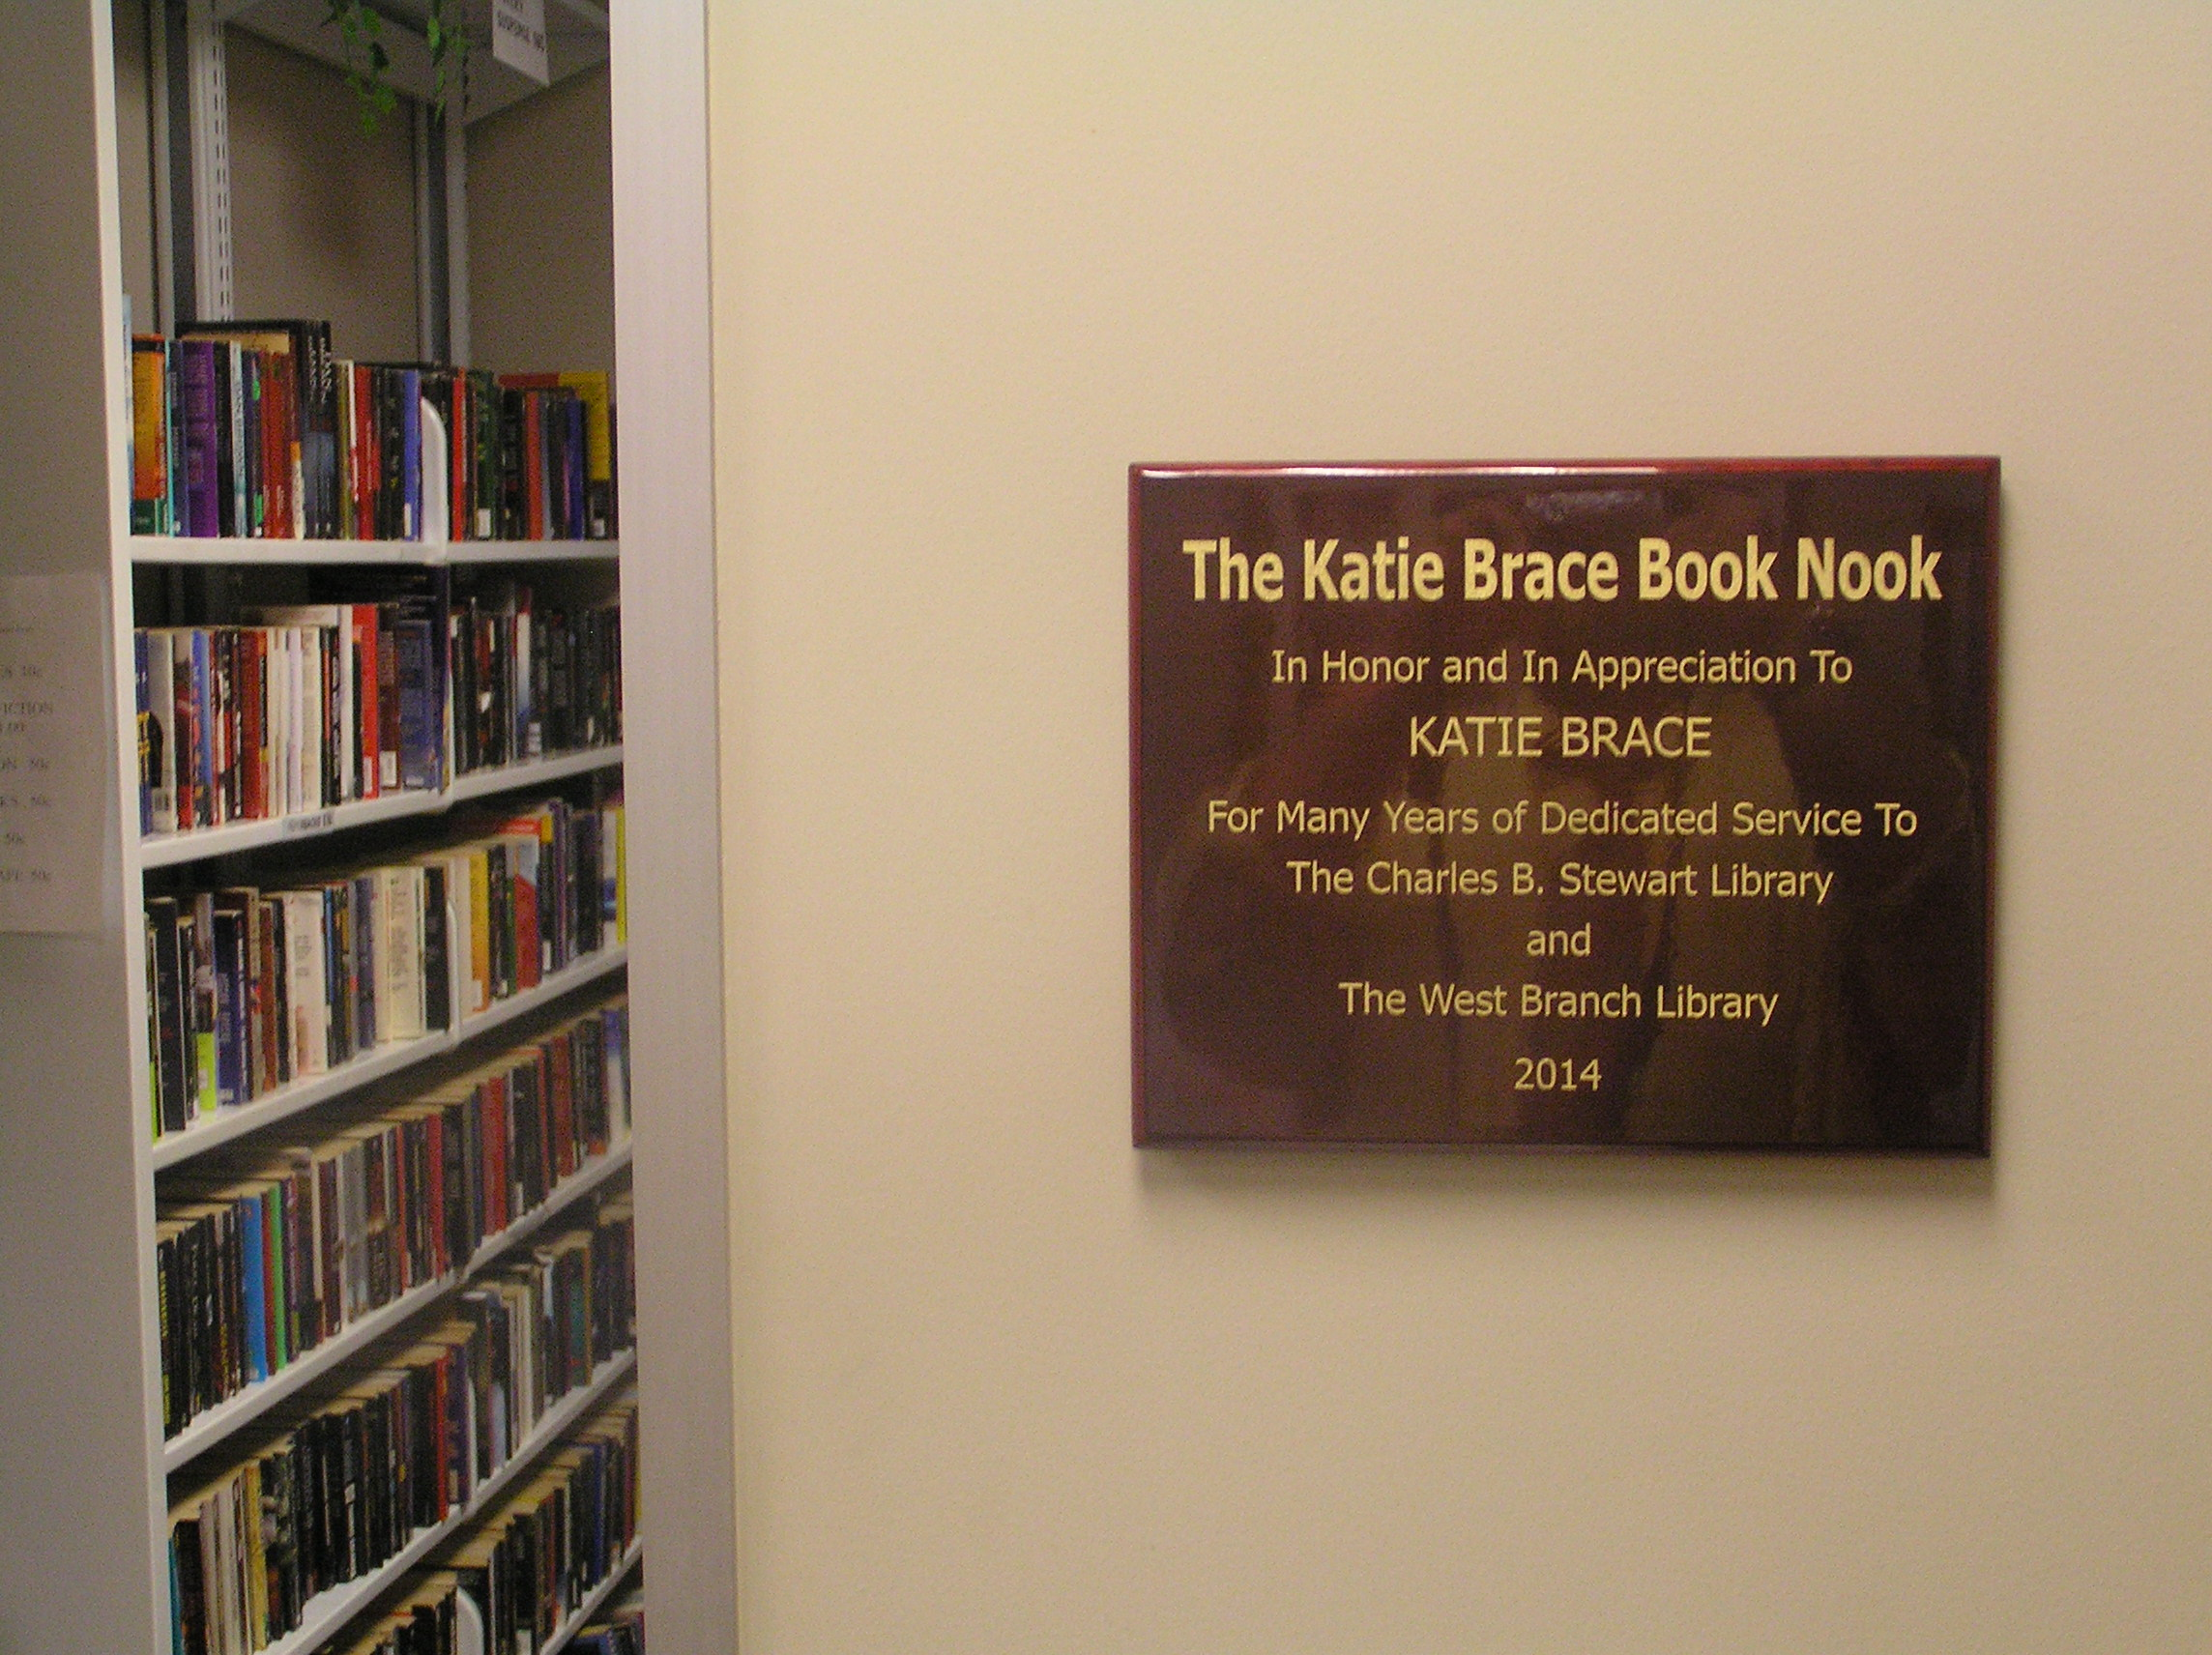 The Katie Brace Book Nook is located in the Charles B. Stewart-West Branch Library